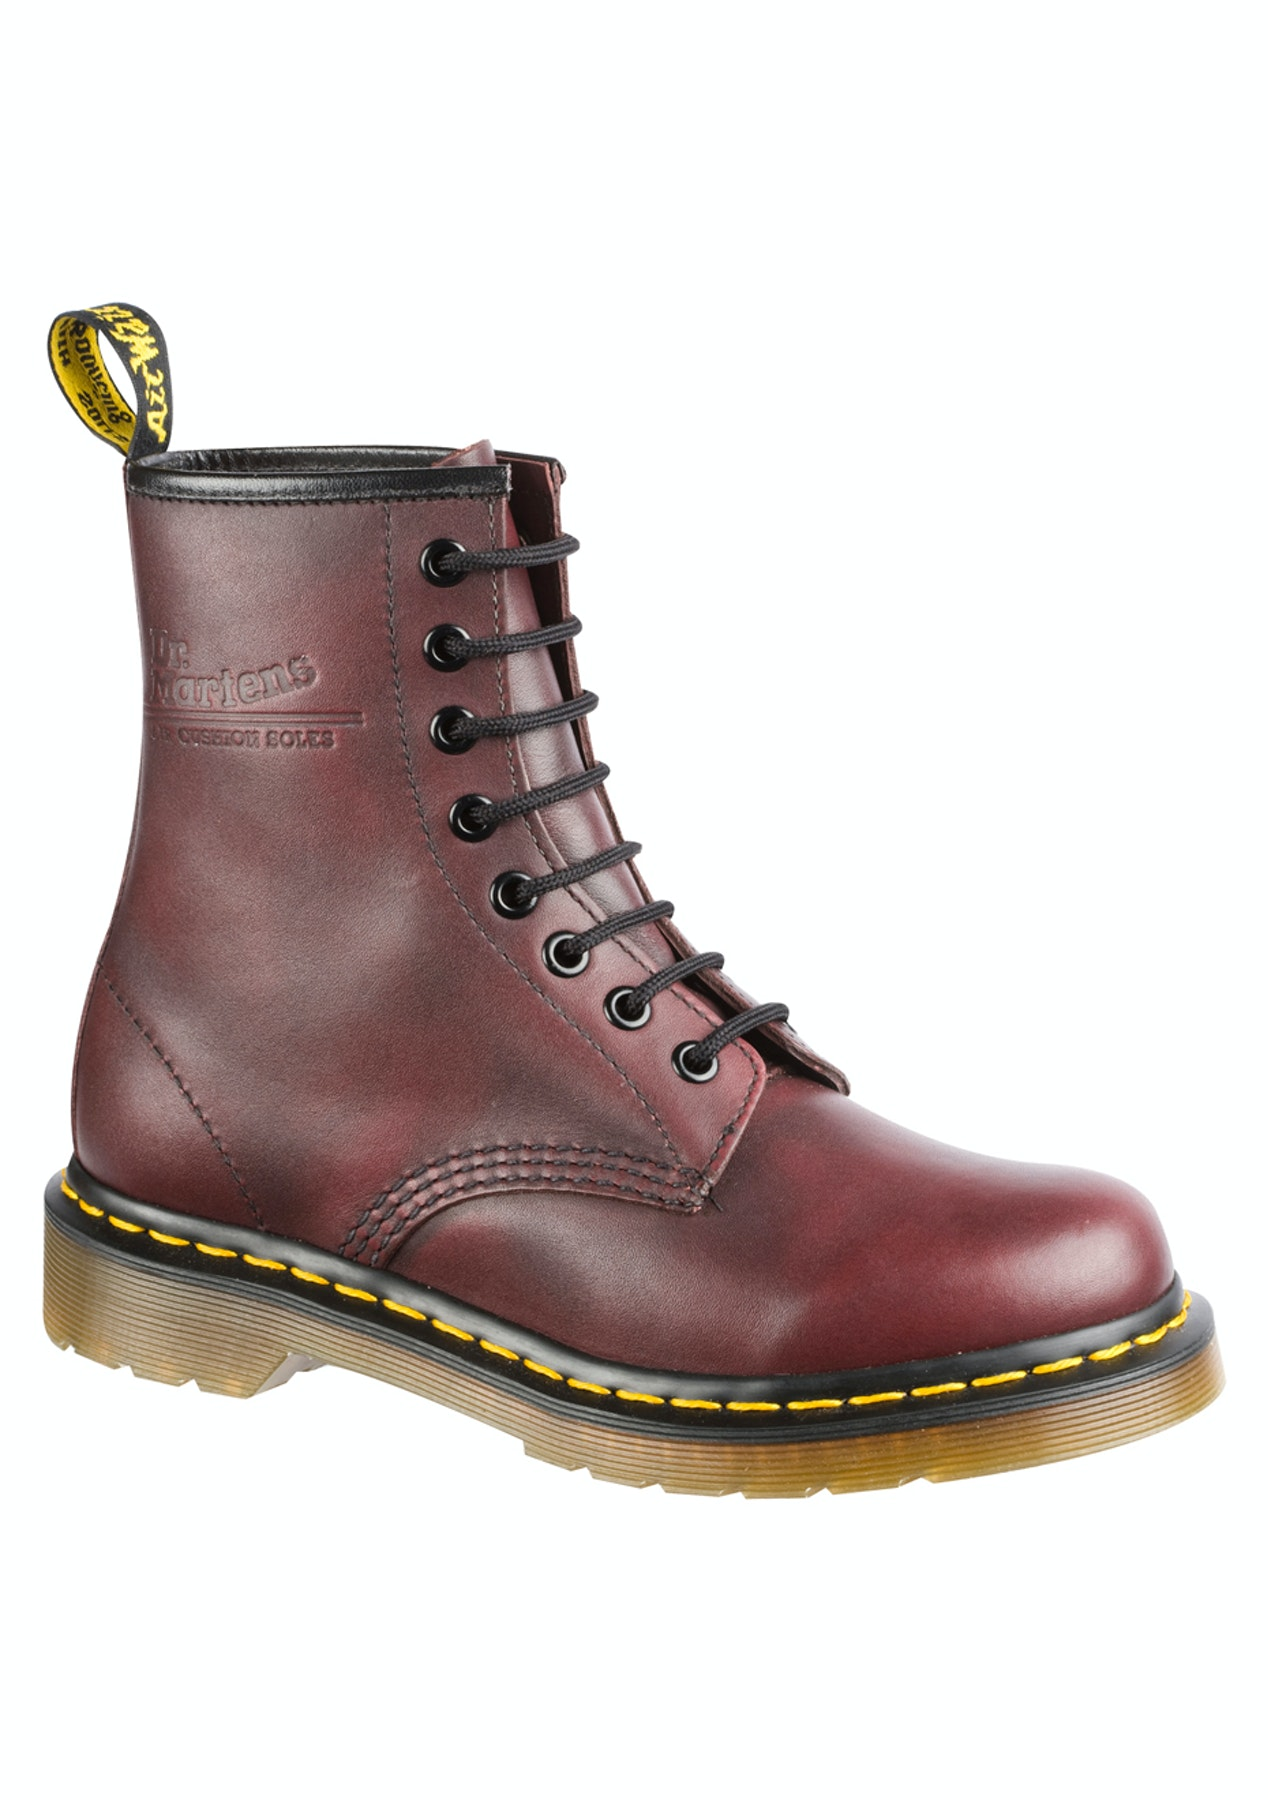 fb4730ad0ce Dr Martens - 1460 8up Red Vintage - Red Vinatge - Shoe Sell Out From  20 -  Onceit